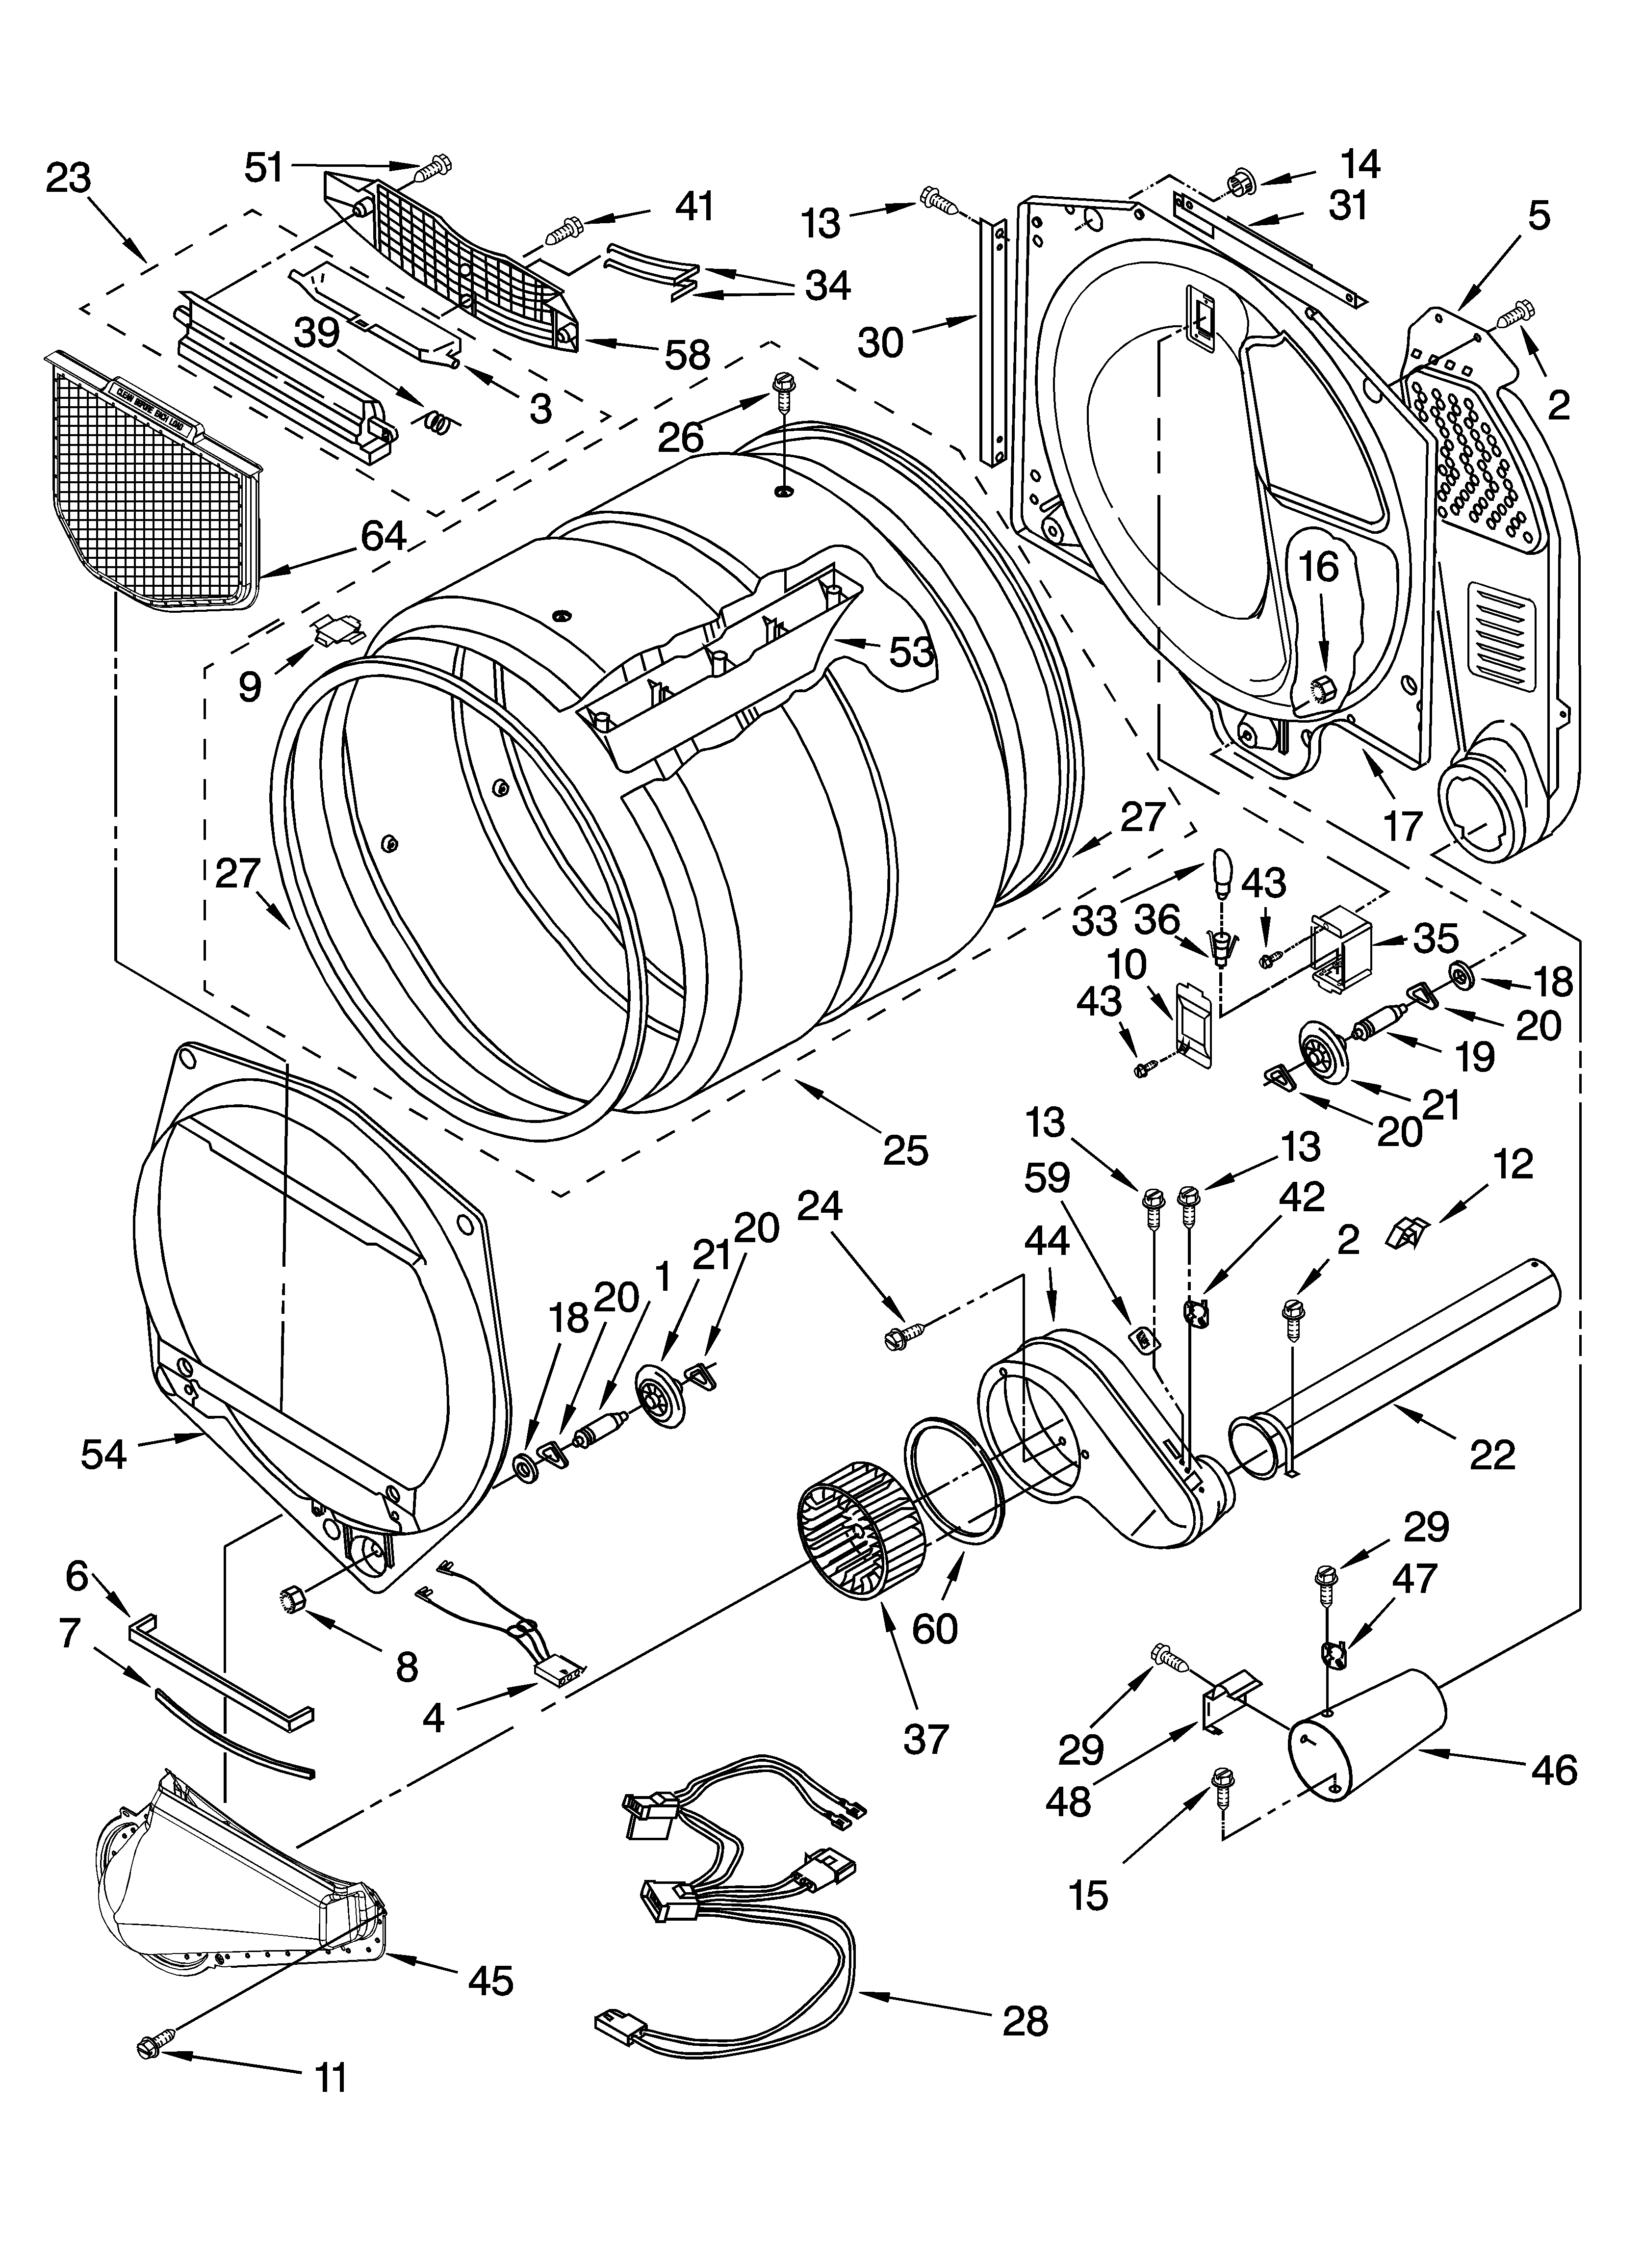 small resolution of kenmore dryer model 110 wiring diagram